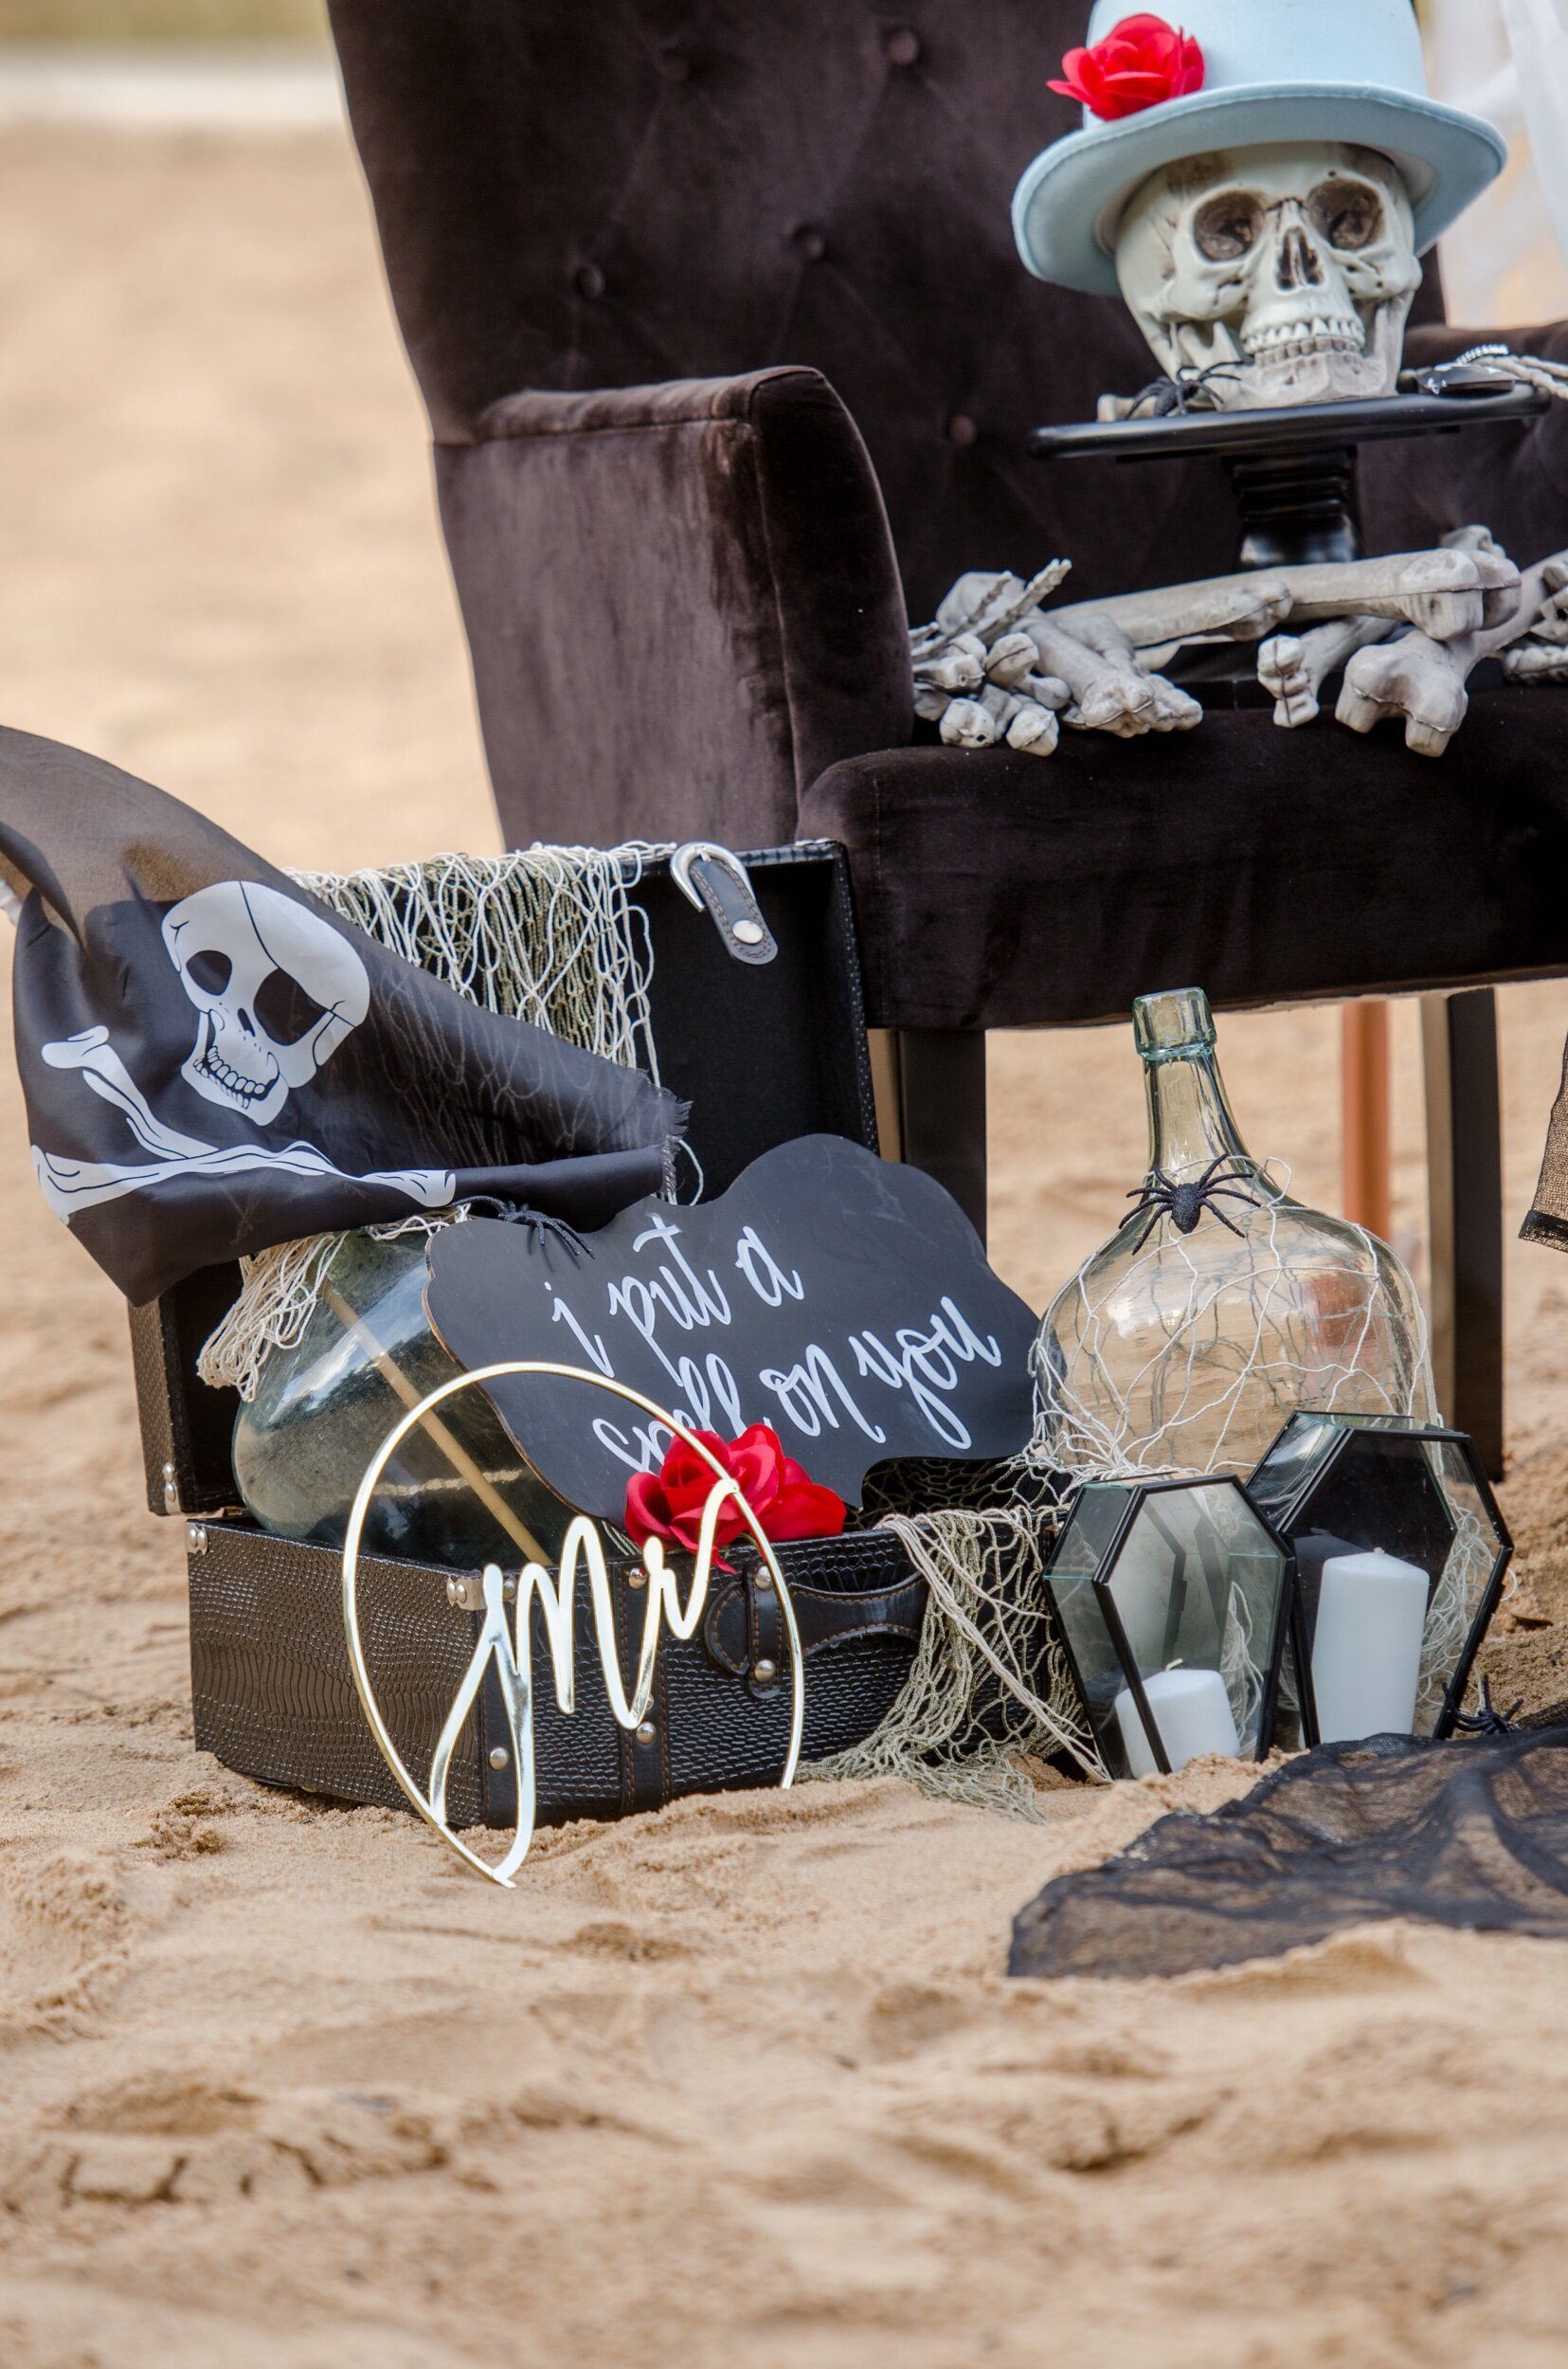 Pirate wedding ideas from Mint Event Design